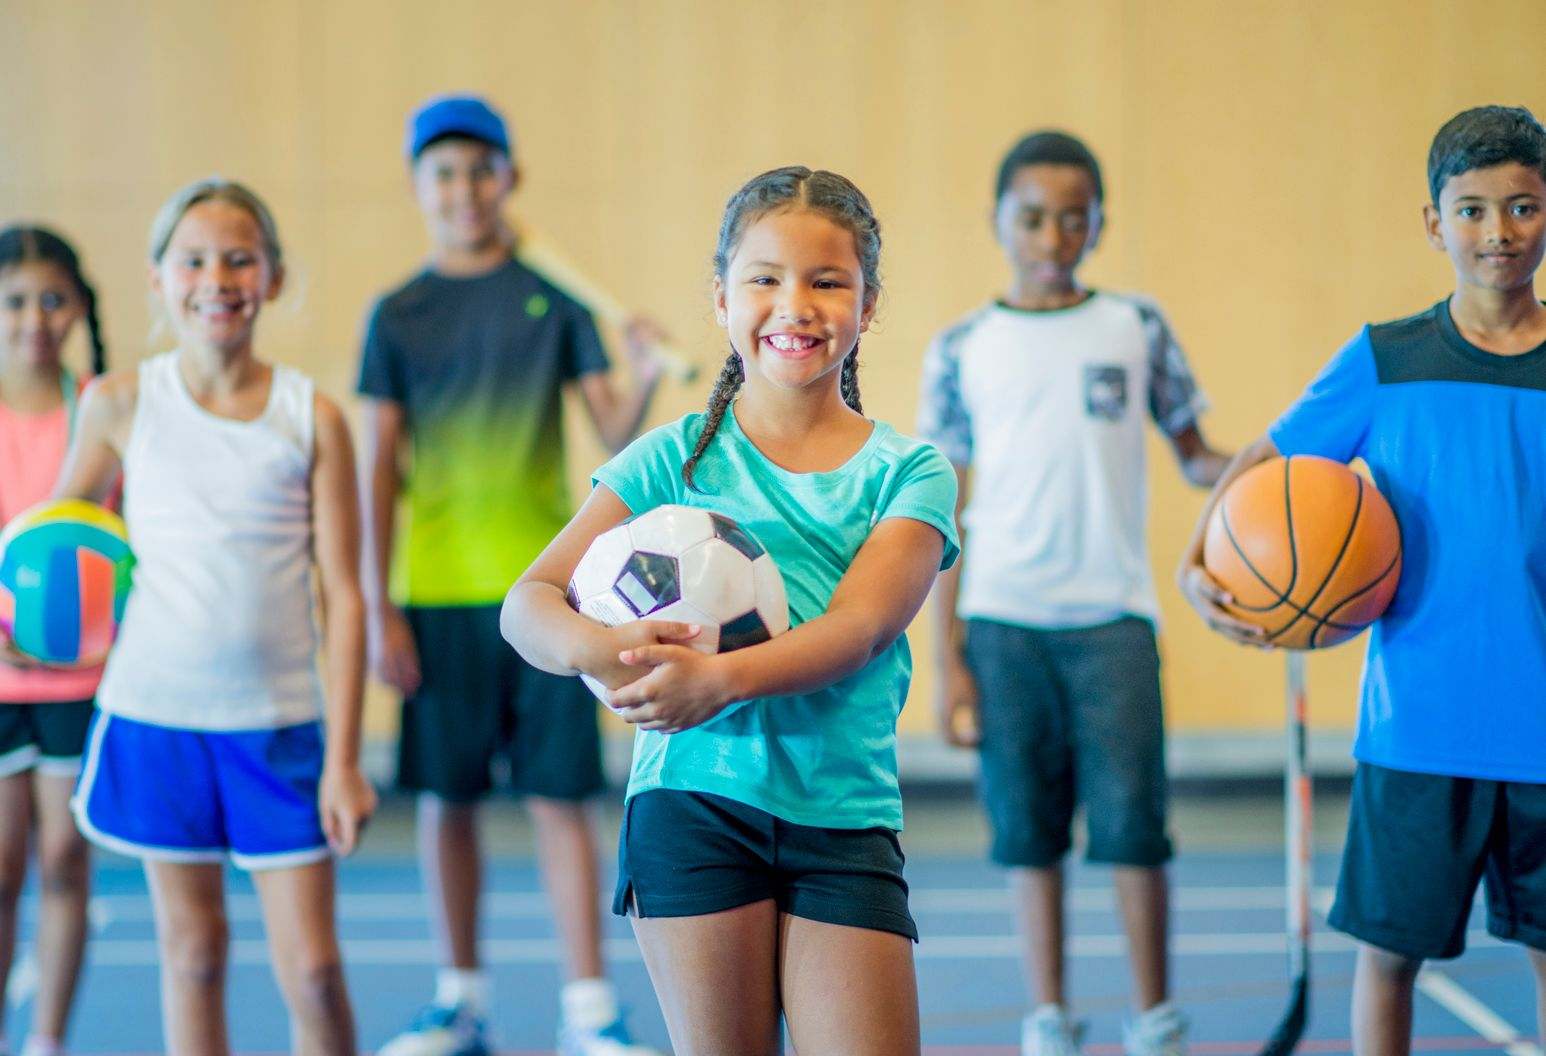 A multi-ethnic group of kids are standing in a gymnasium. They are holding a basketball, volleyball, hockey stick, skipping rope, baseball bat, and soccer ball. They are smiling.